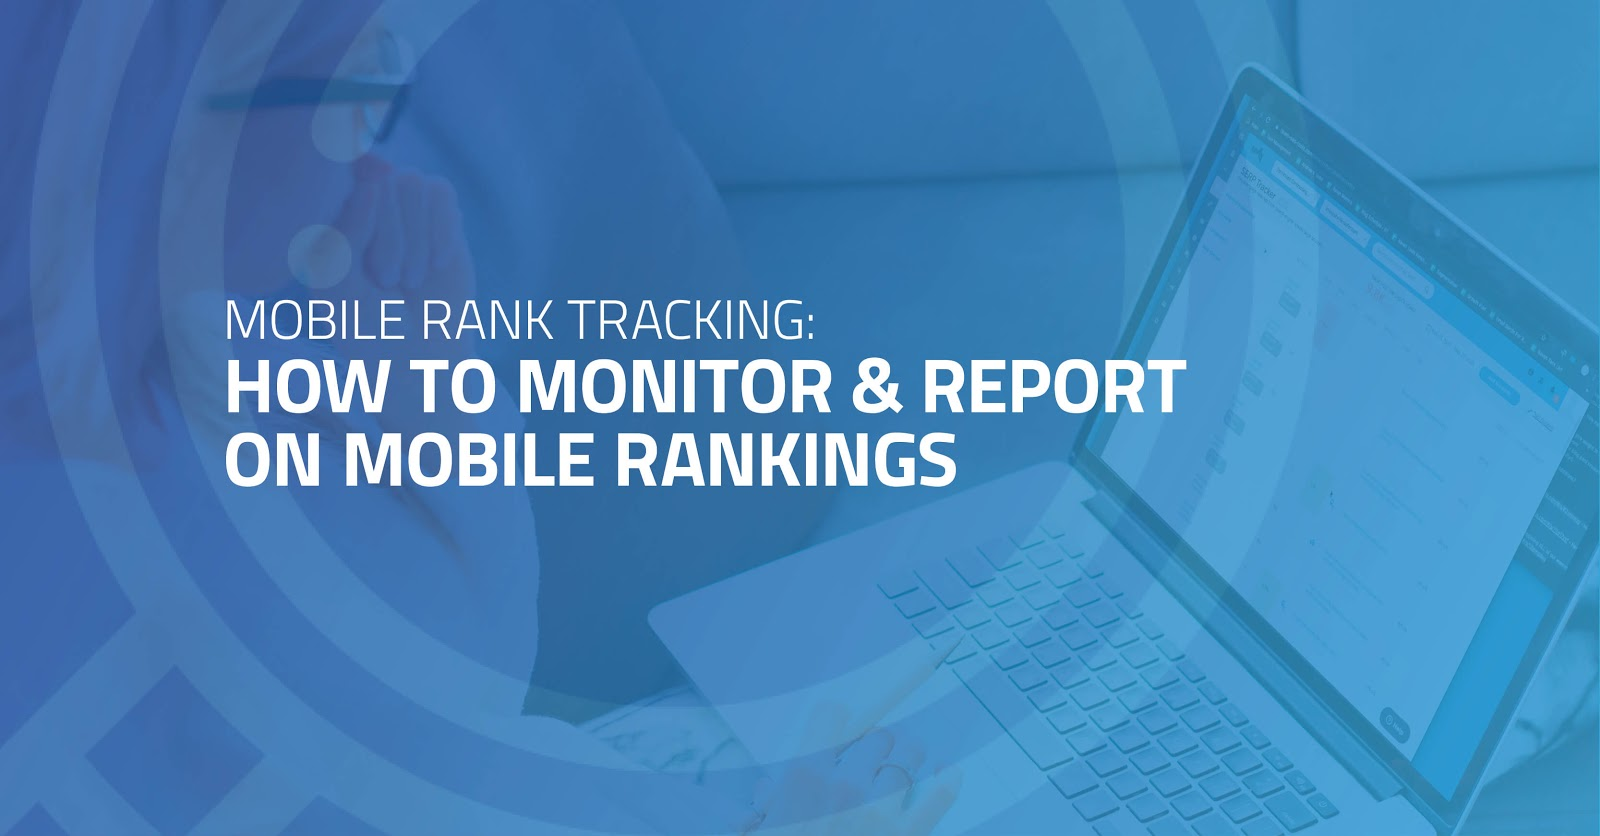 Mobile Rank Tracking: How to Monitor & Report on Mobile Rankings